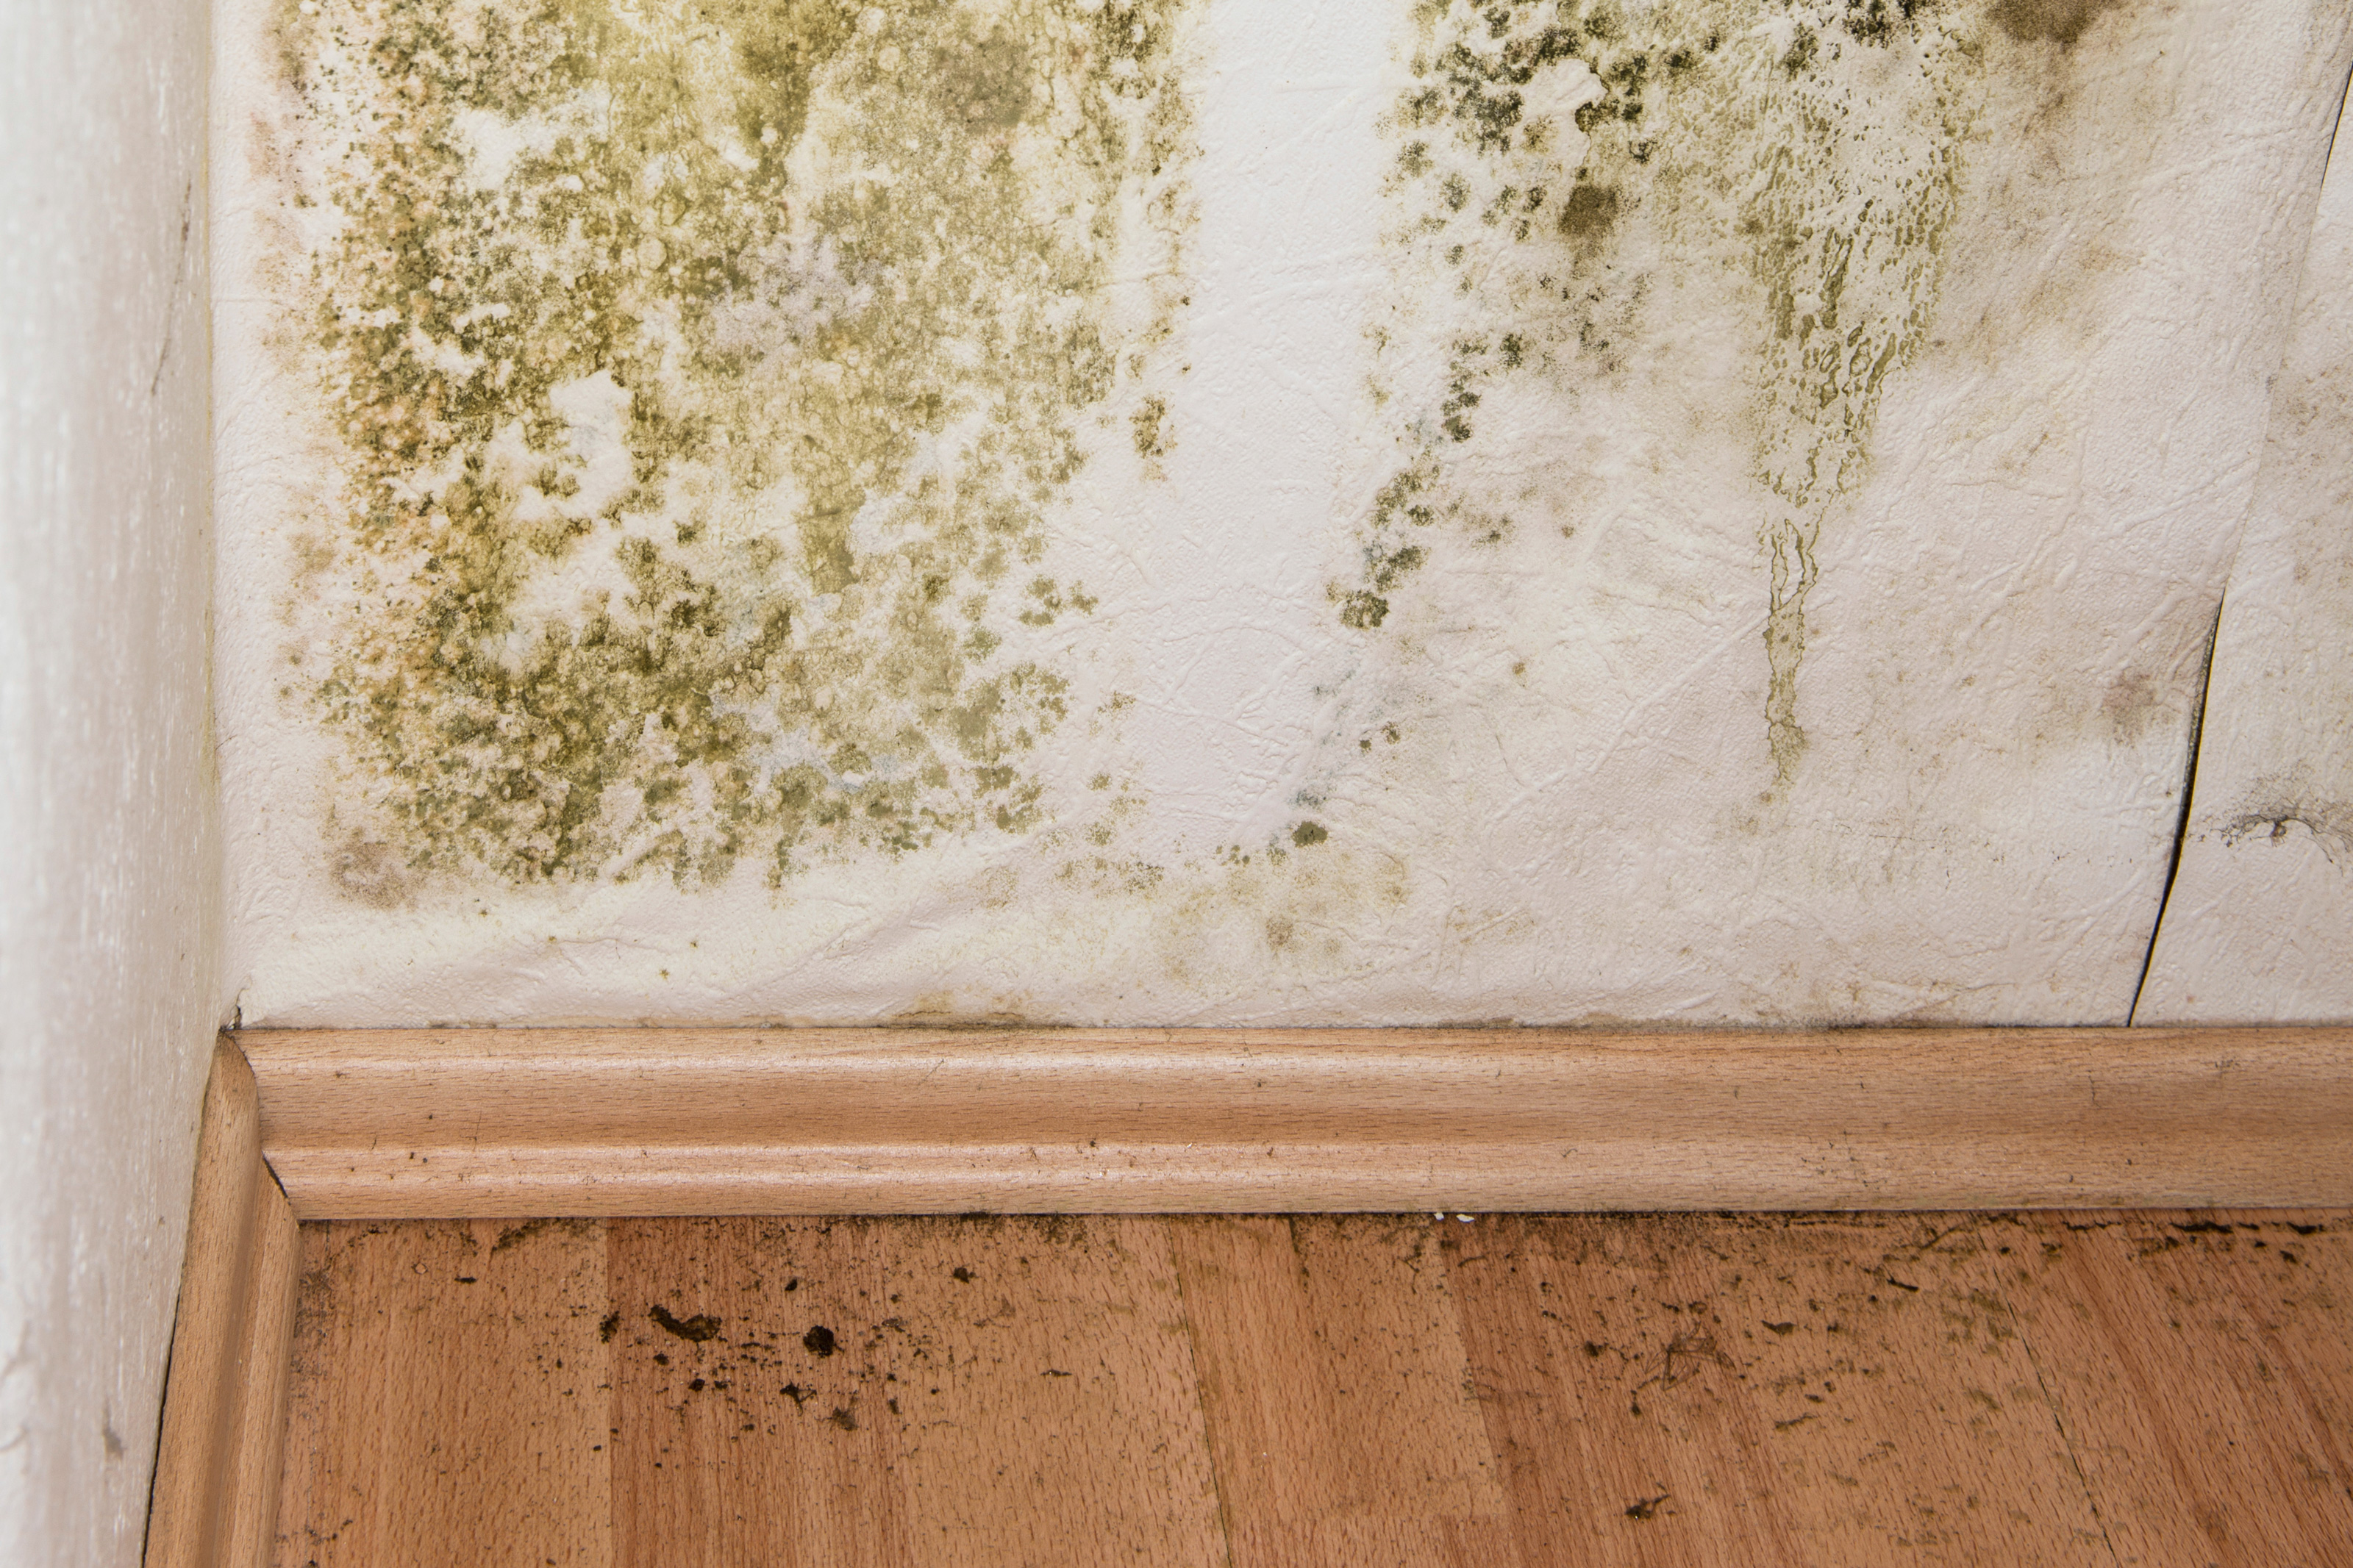 Mold on an interior wall of a home